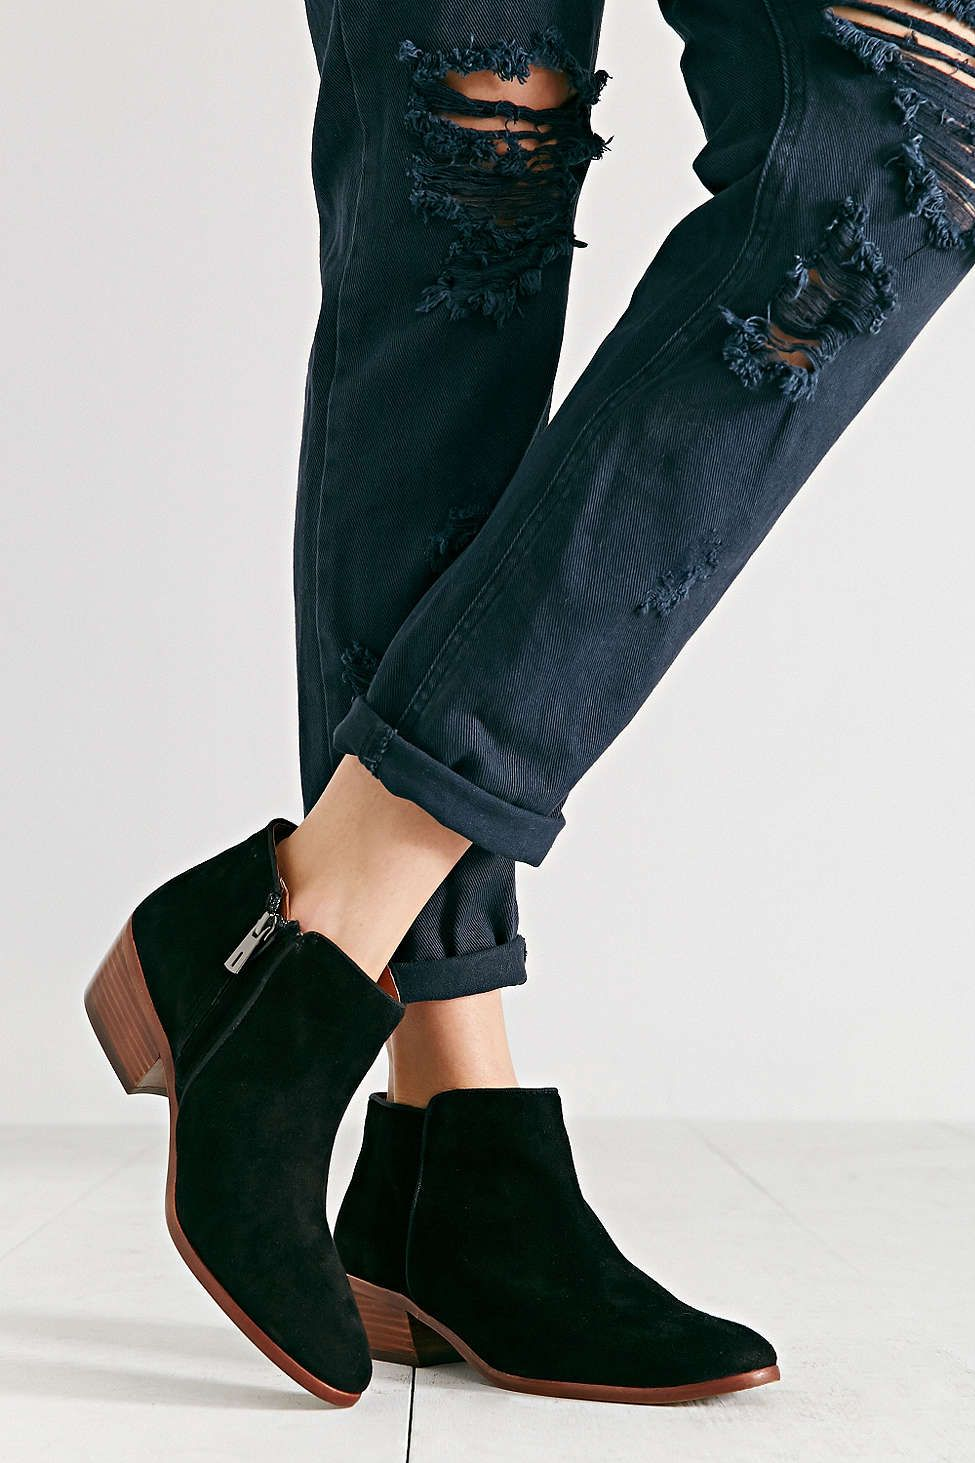 38594e5e4 ... sophisticated shoes -sam Petty. Boots + Booties for Women. inspo  love  the edgy dark blue jeans with the sleek and sophisticated shoes  3